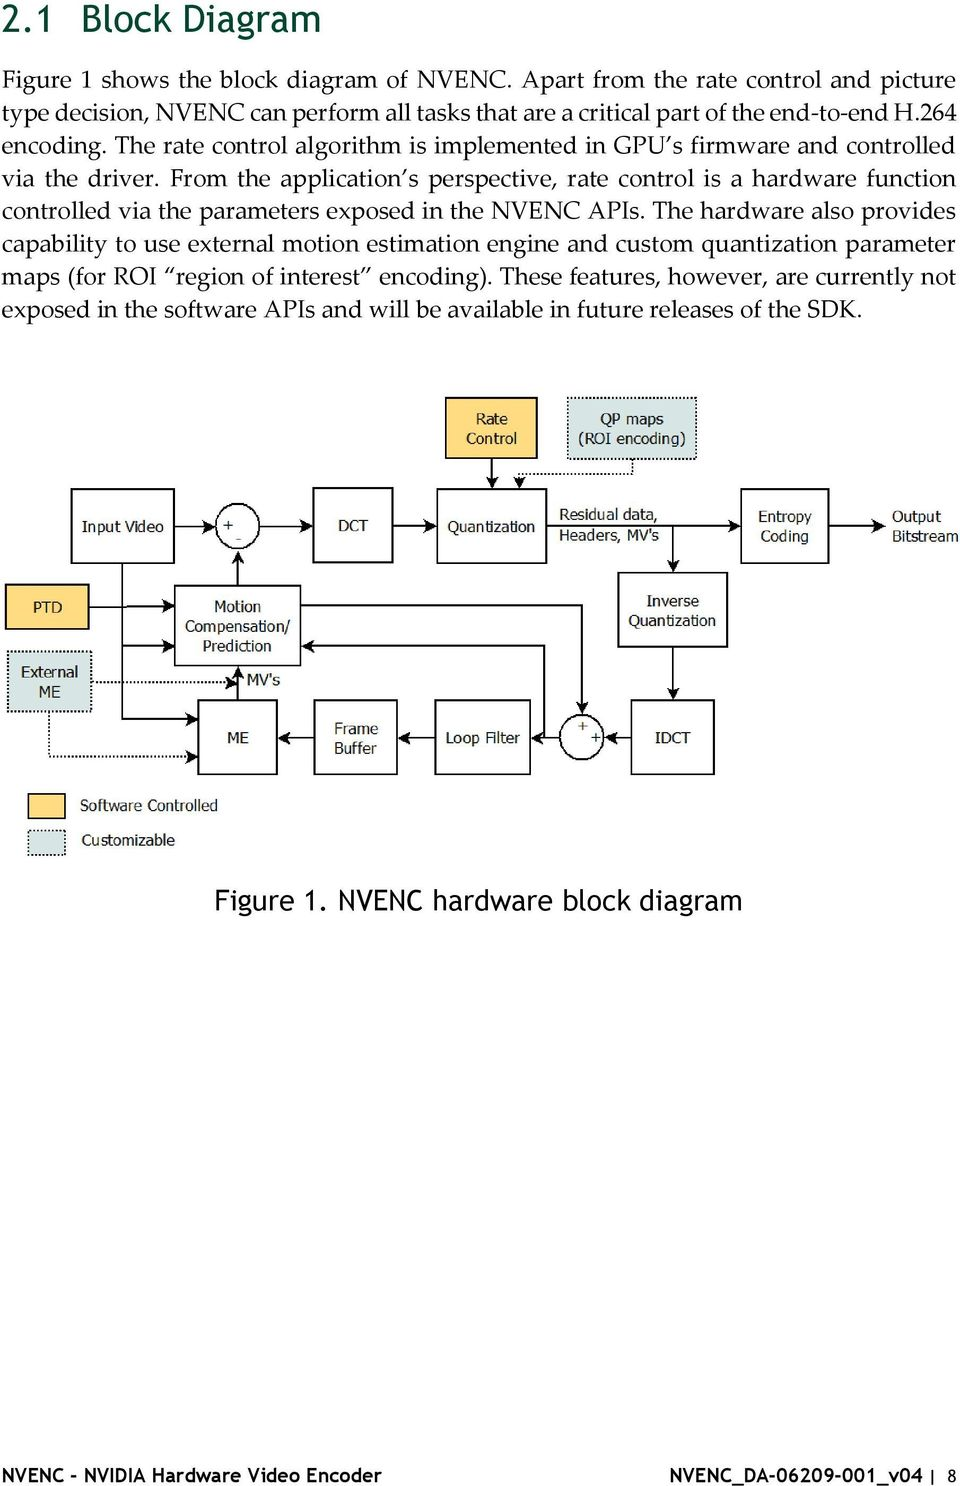 Nvenc Nvidia Hardware Video Encoder Pdf Block Diagram From The Application S Perspective Rate Control Is A Function Controlled Via Parameters